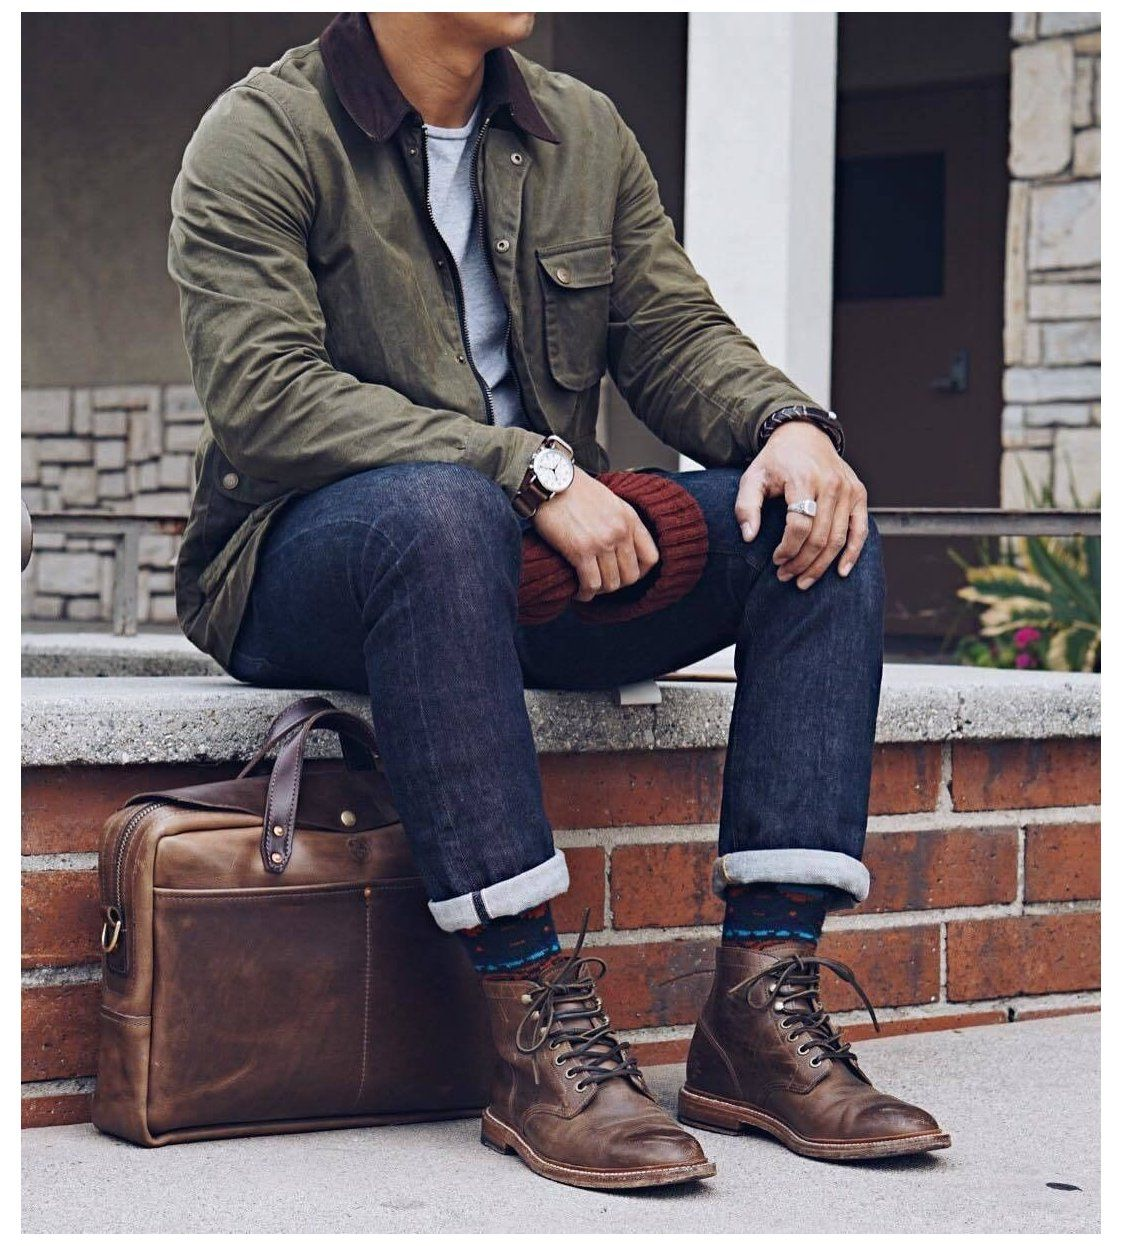 Mens Fashion Rugged Mountain Outdoors Outdoors Mens Fashion Mens Fashion Rugged Mounta Mens Outdoor Fashion Winter Outfits Men Men Fashion Casual Outfits